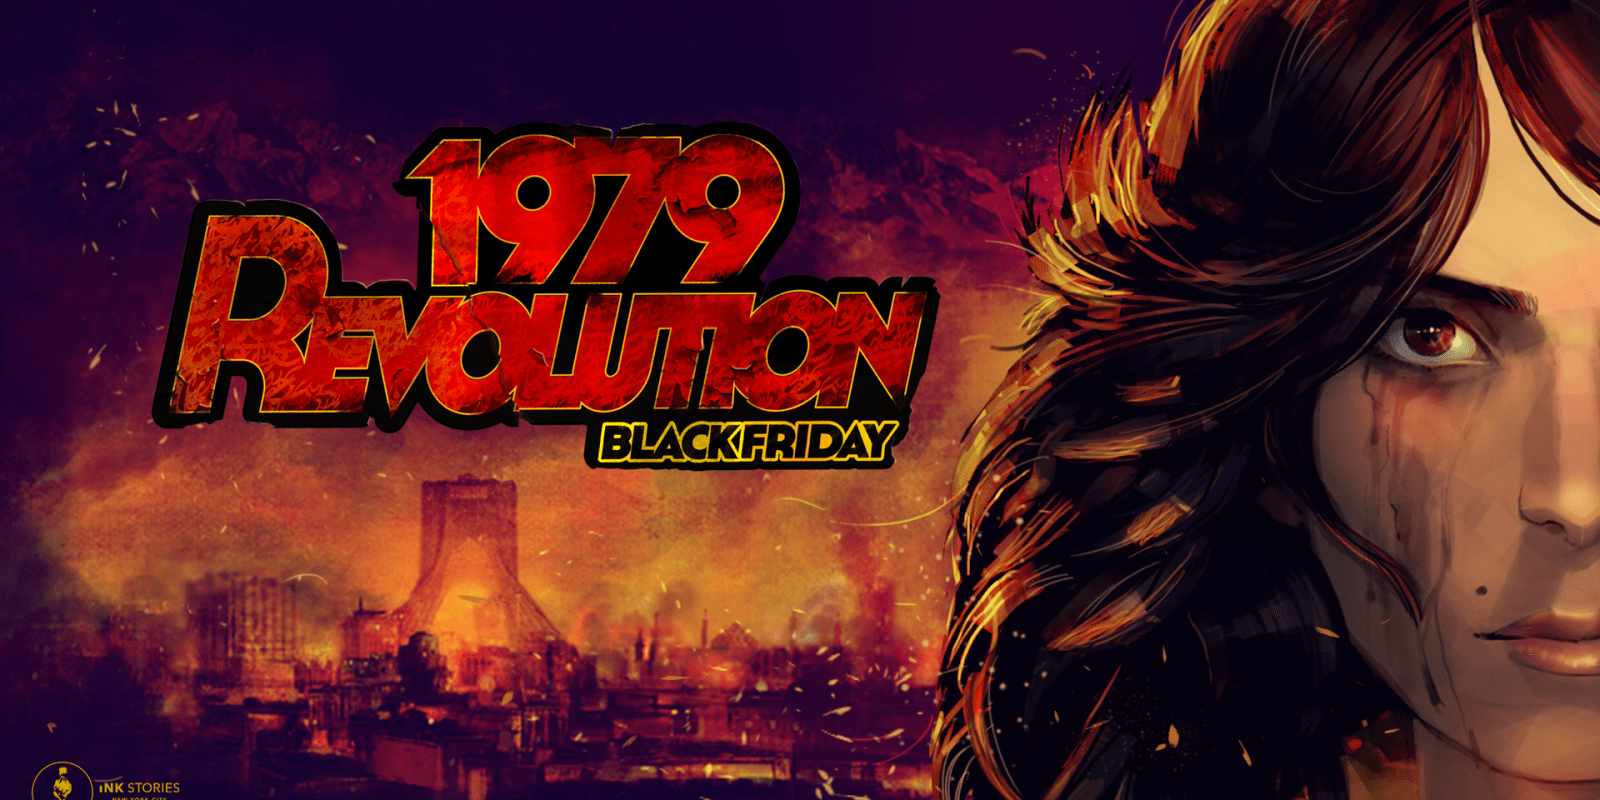 979 REVOLUTION: Black Friday